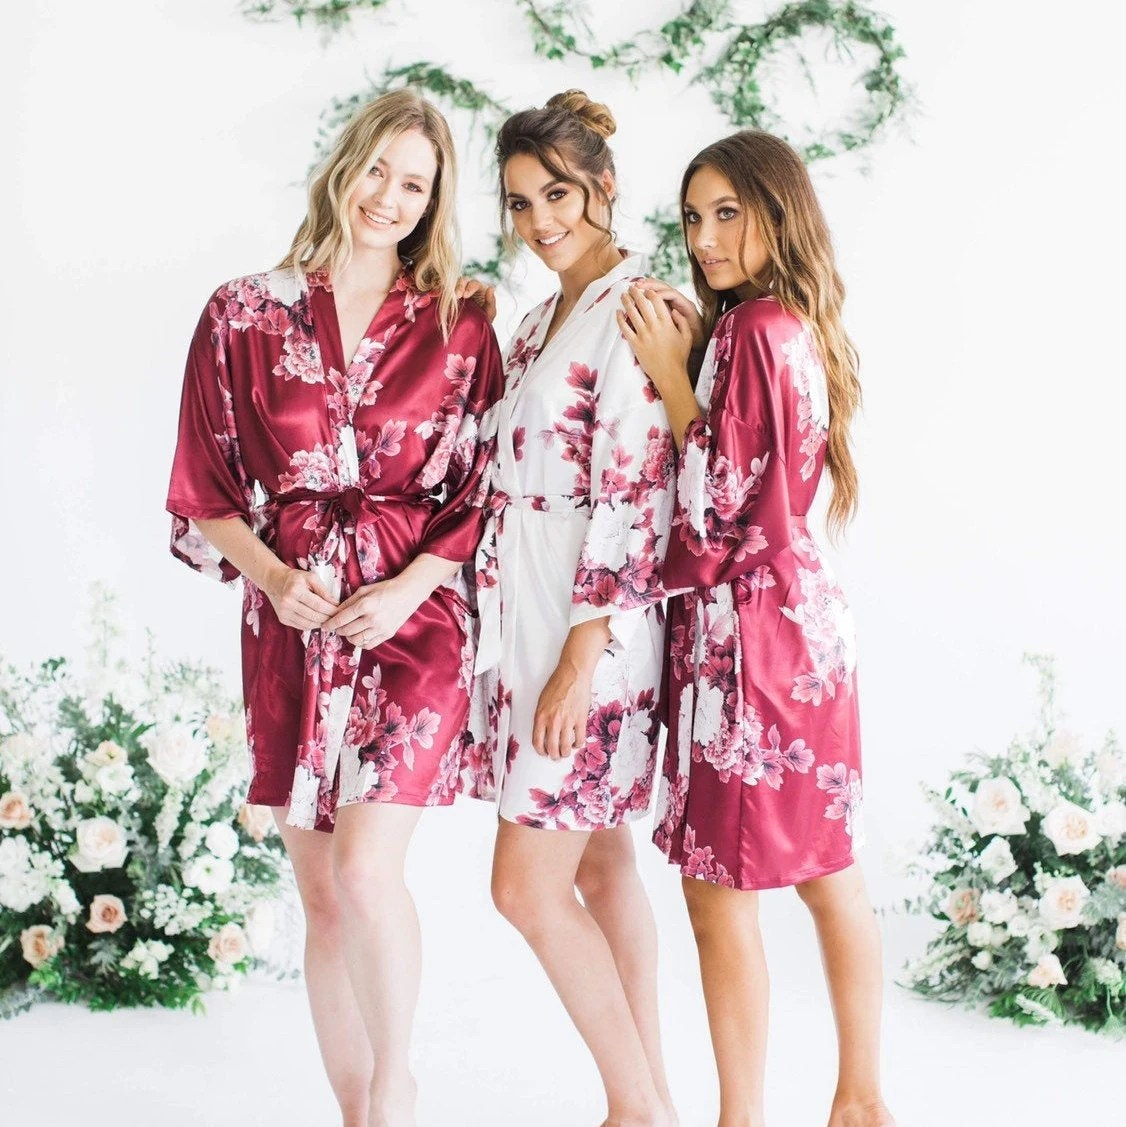 Silk Floral Robes Burgundy Floral Robes Bridesmaid Robes Burgundy